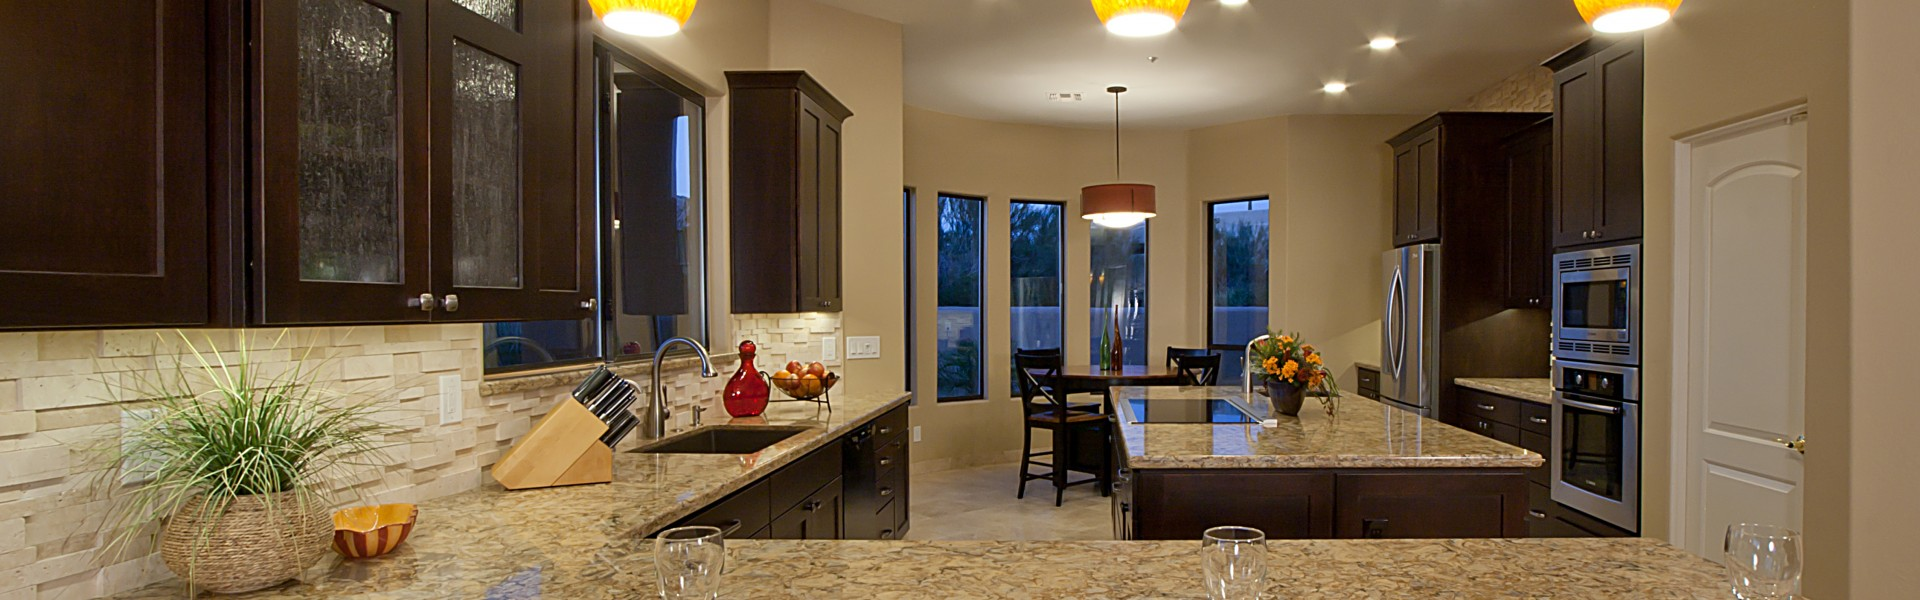 greenville home remodeling raredesign home remodel designer kitchen remodeling designers homedesigns